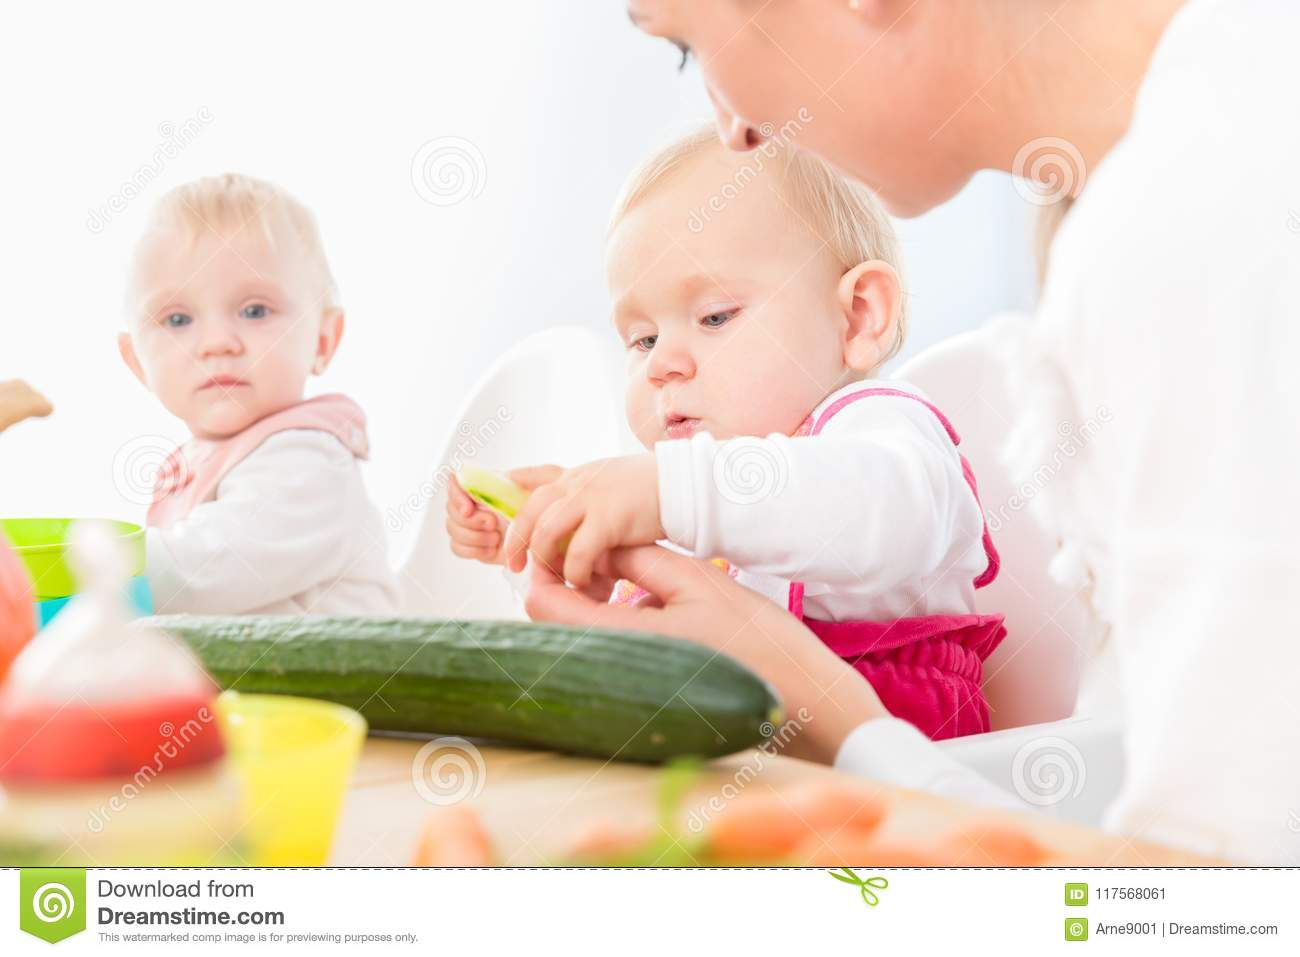 Cute baby girl eating healthy solid food in a modern daycare center